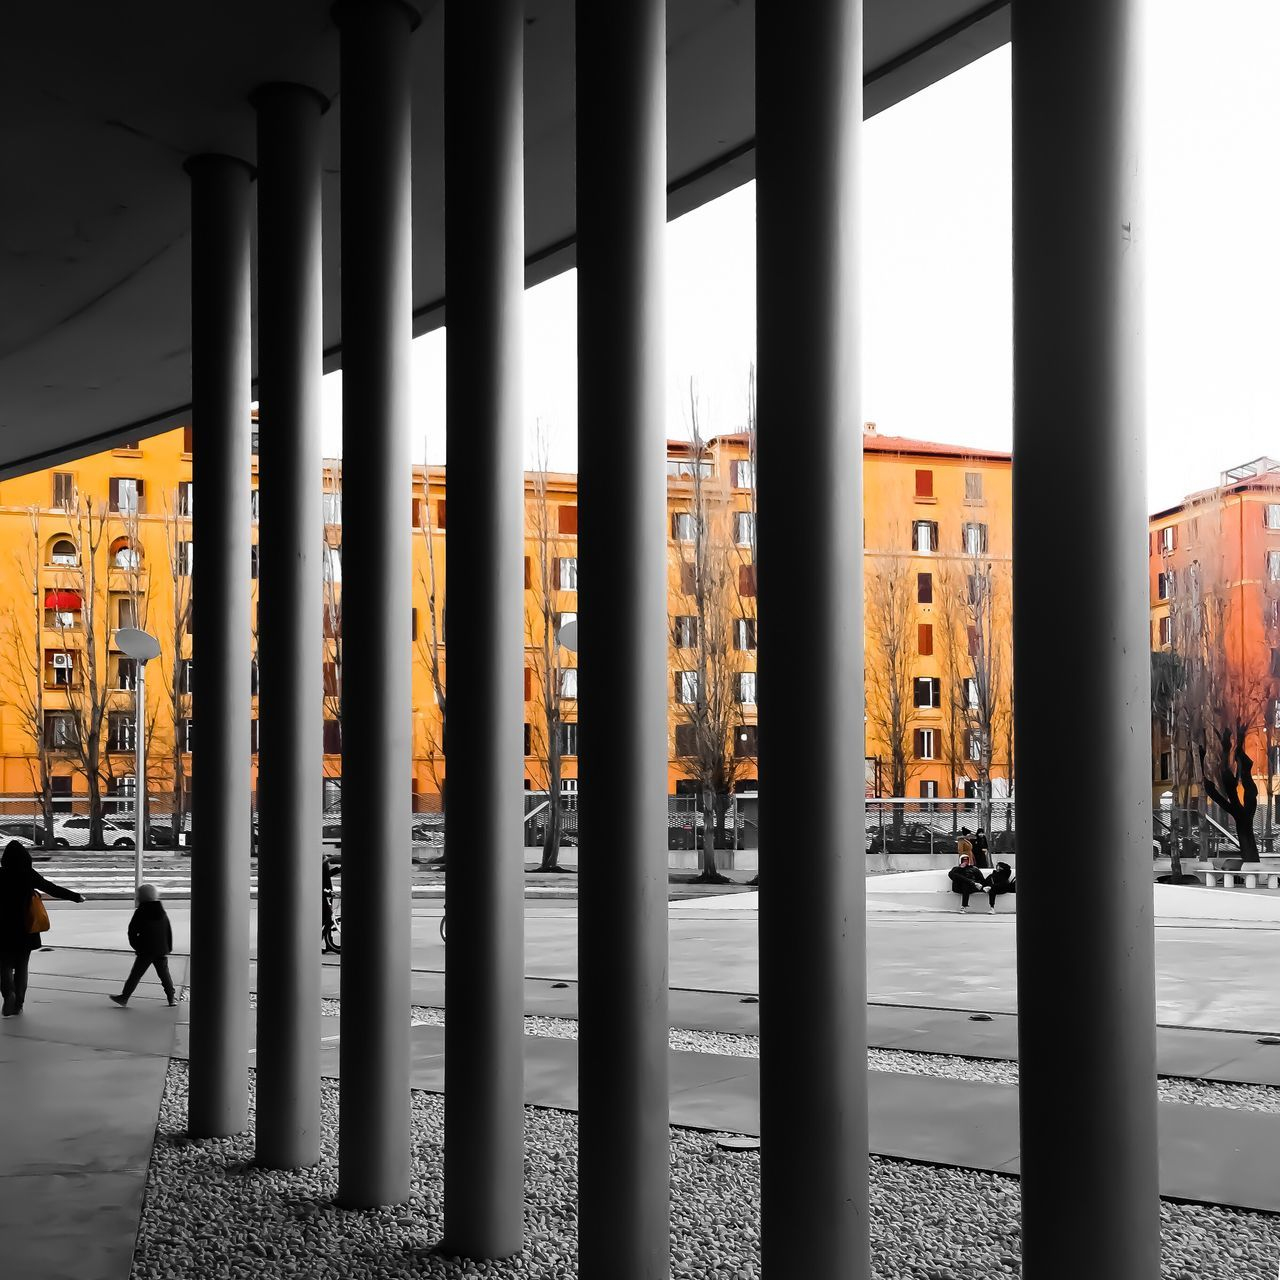 architecture, built structure, building, architectural column, no people, building exterior, in a row, side by side, day, city, outdoors, metal, transportation, repetition, nature, sky, orange color, connection, travel destinations